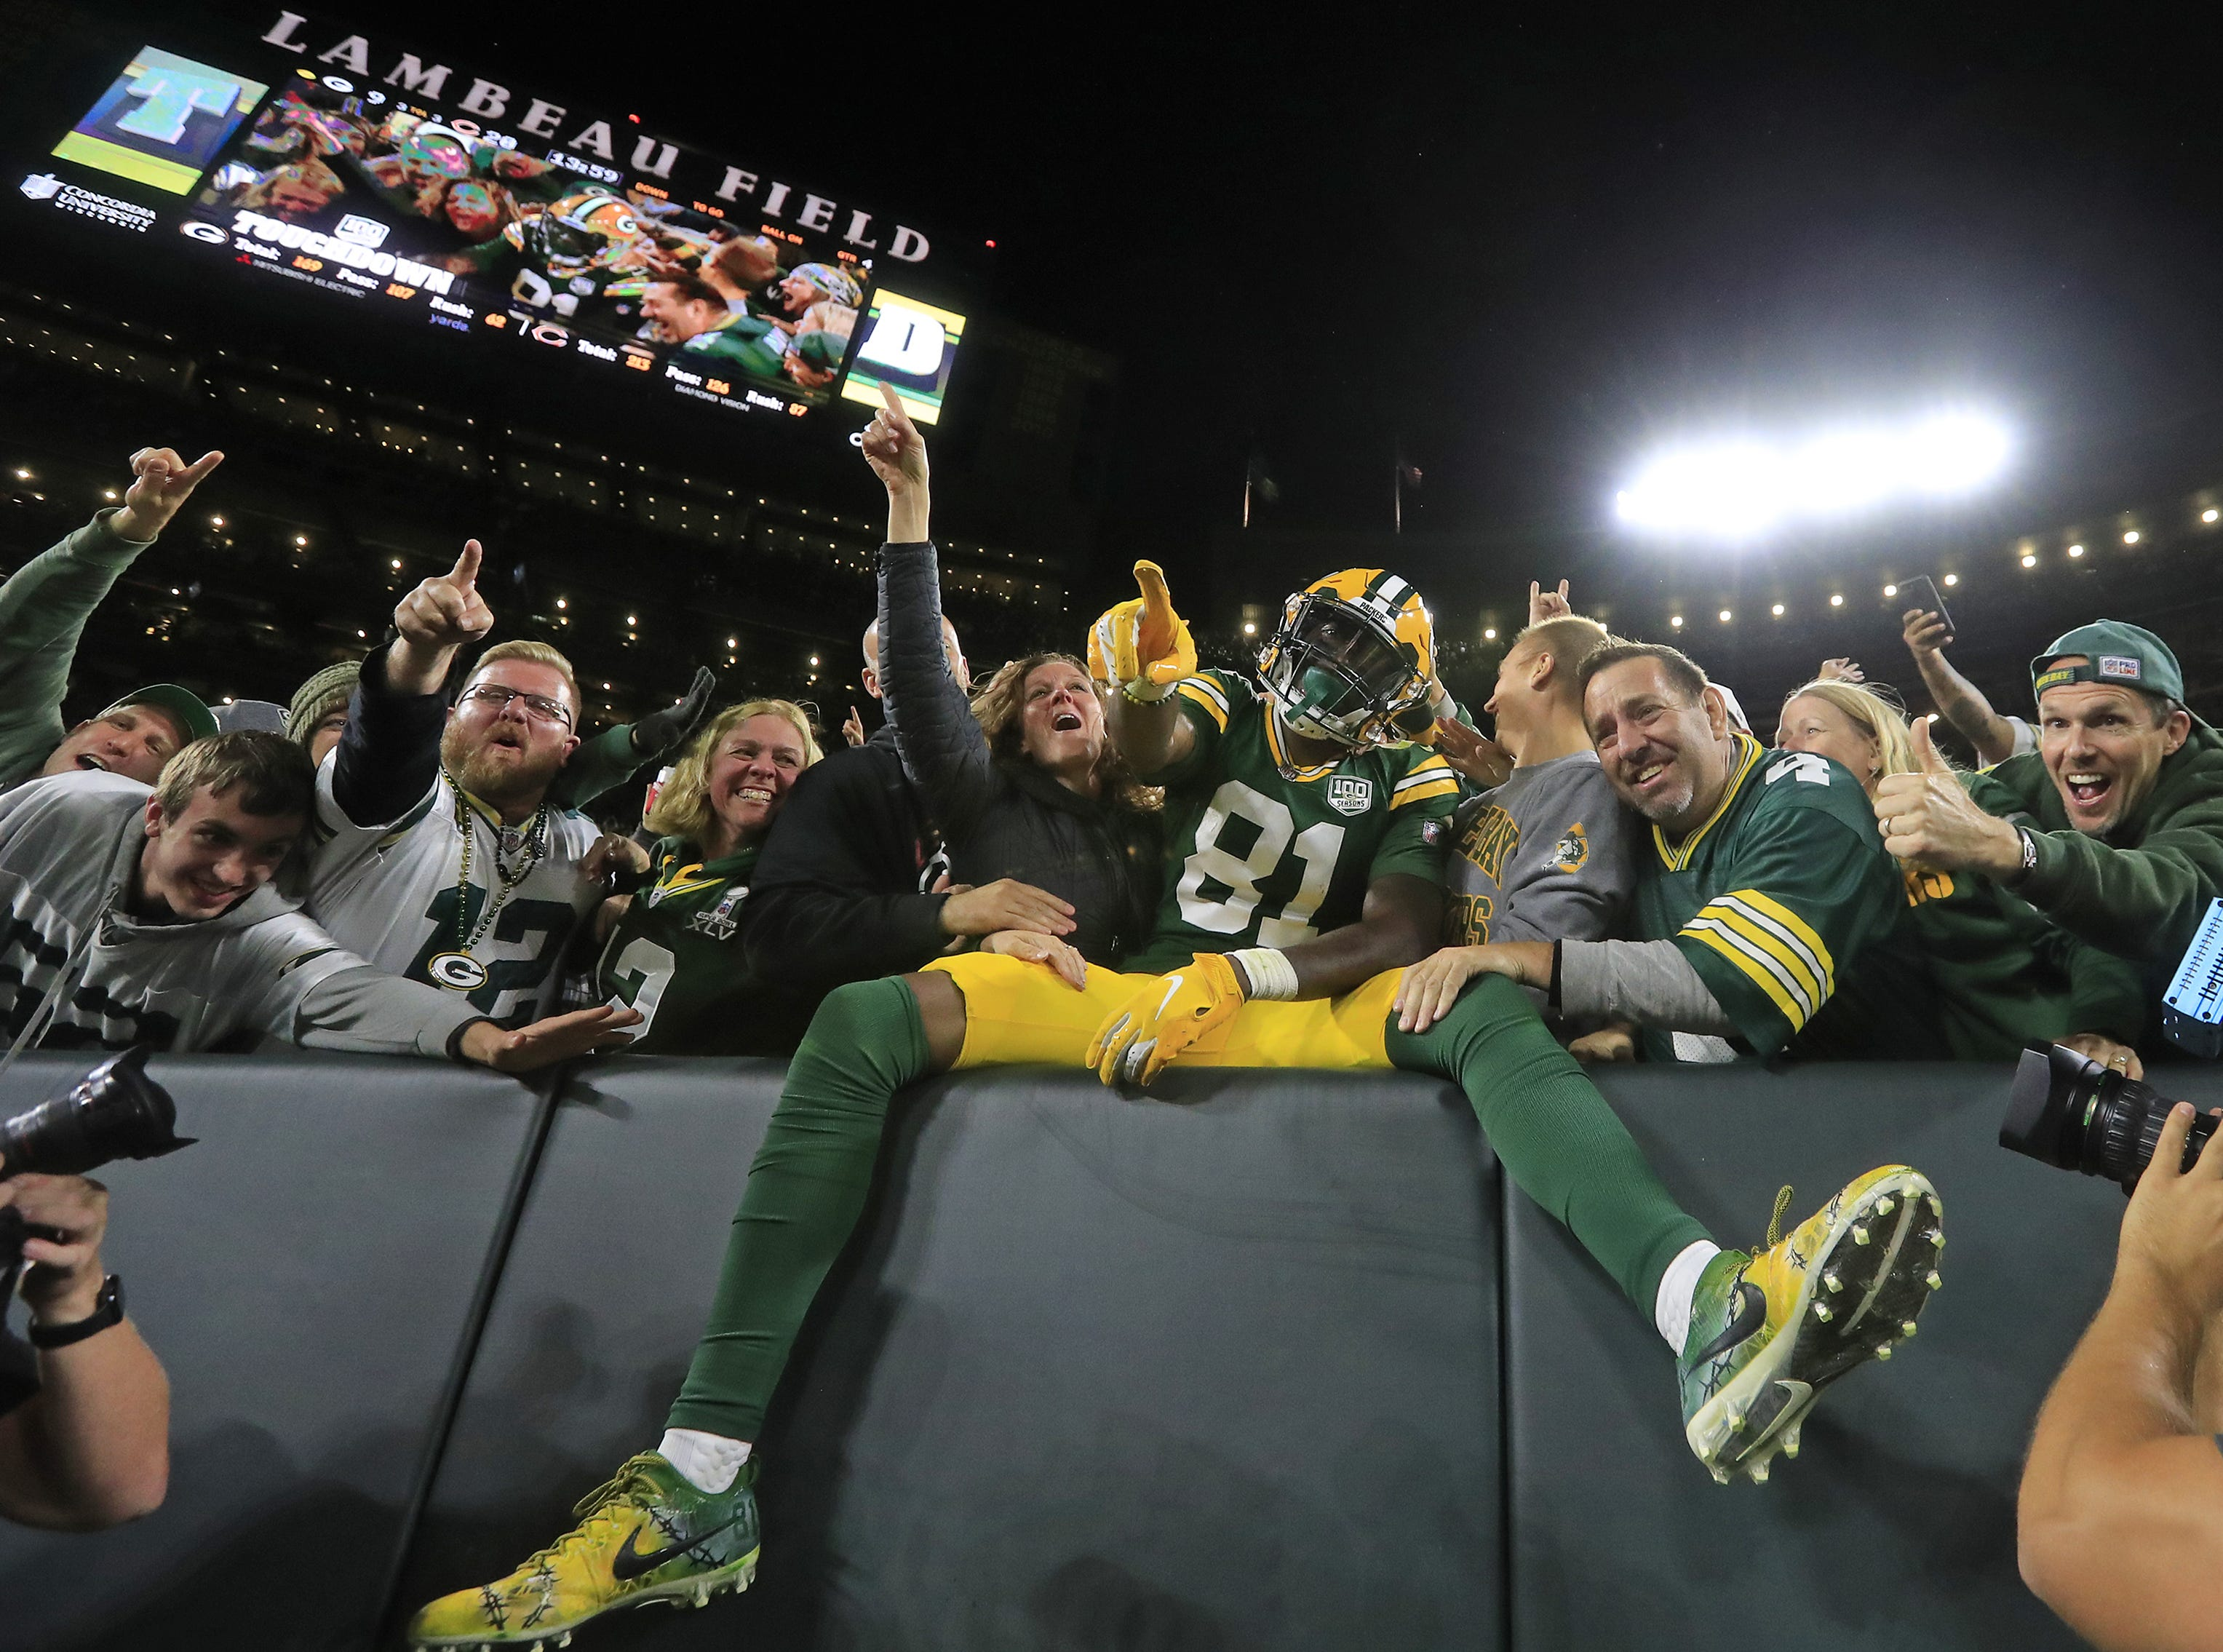 Green Bay Packers wide receiver Geronimo Allison (81) takes a Lambeau leap after scoring a touchdown against the Chicago Bears in the fourth quarter at Lambeau Field on Sunday, September 9, 2018 in Green Bay, Wis.